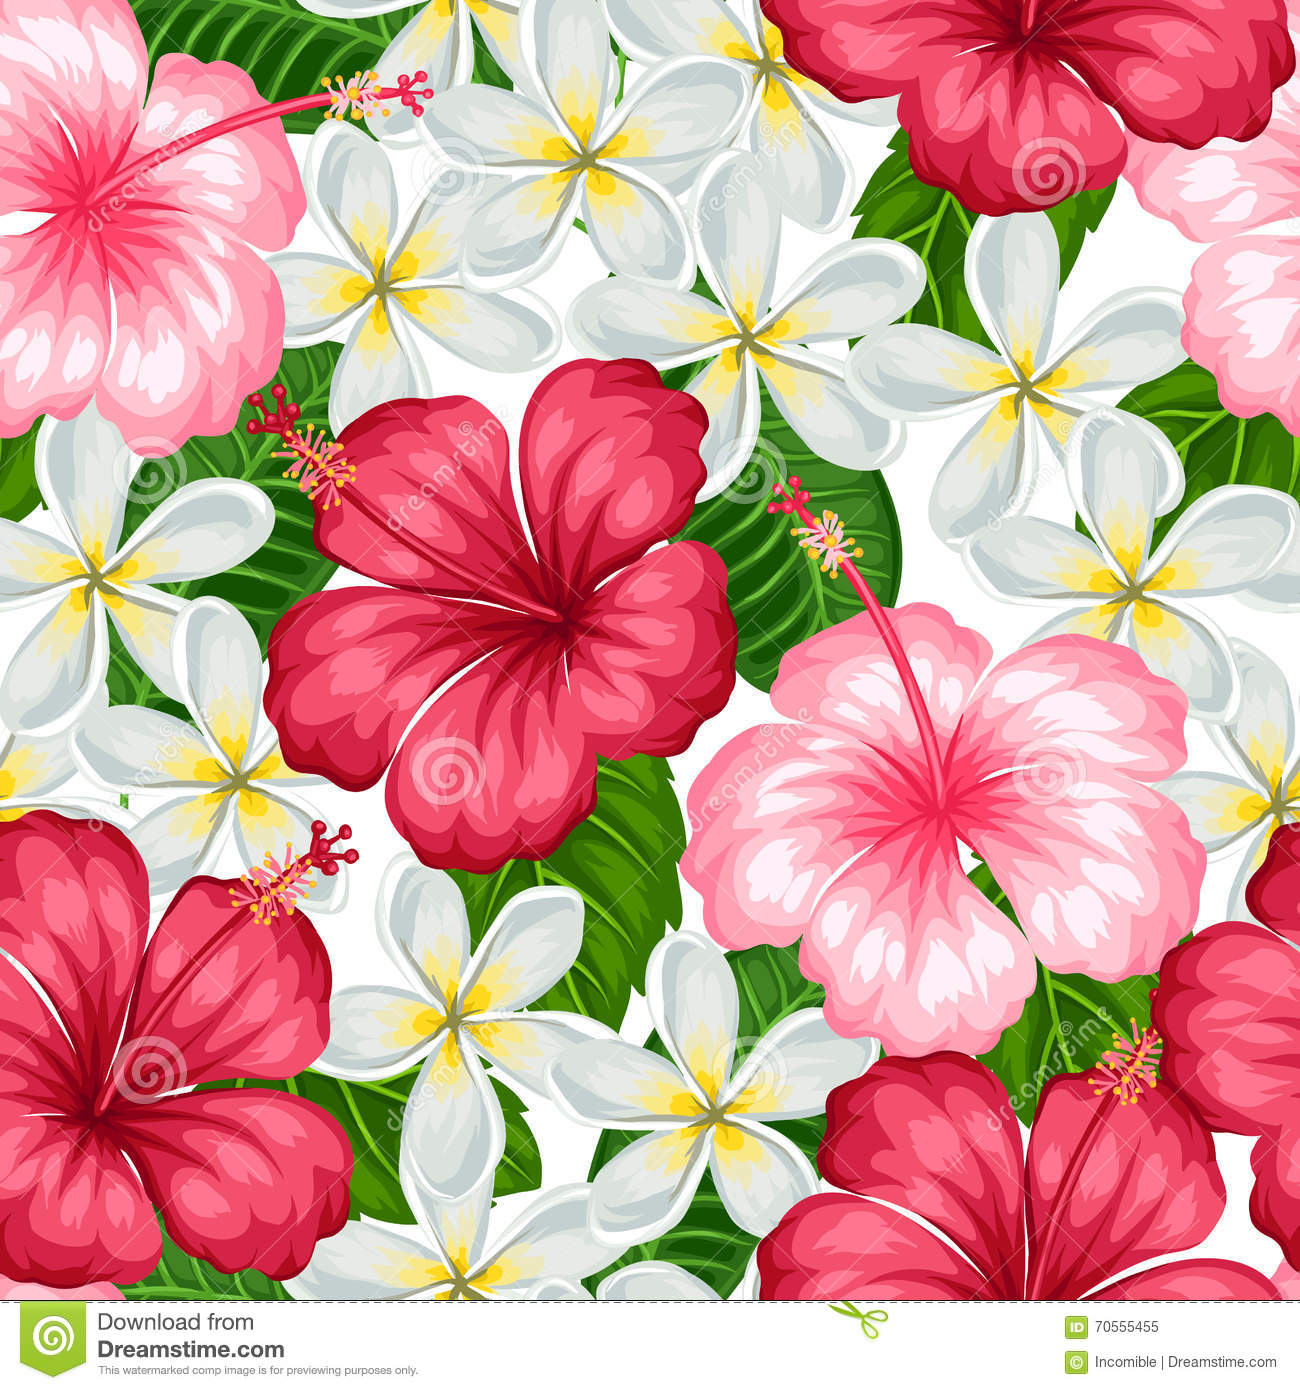 Seamless pattern with tropical flowers hibiscus and plumeria seamless pattern with tropical flowers hibiscus and plumeria background made without clipping mask easy to use fabric decorative izmirmasajfo Choice Image